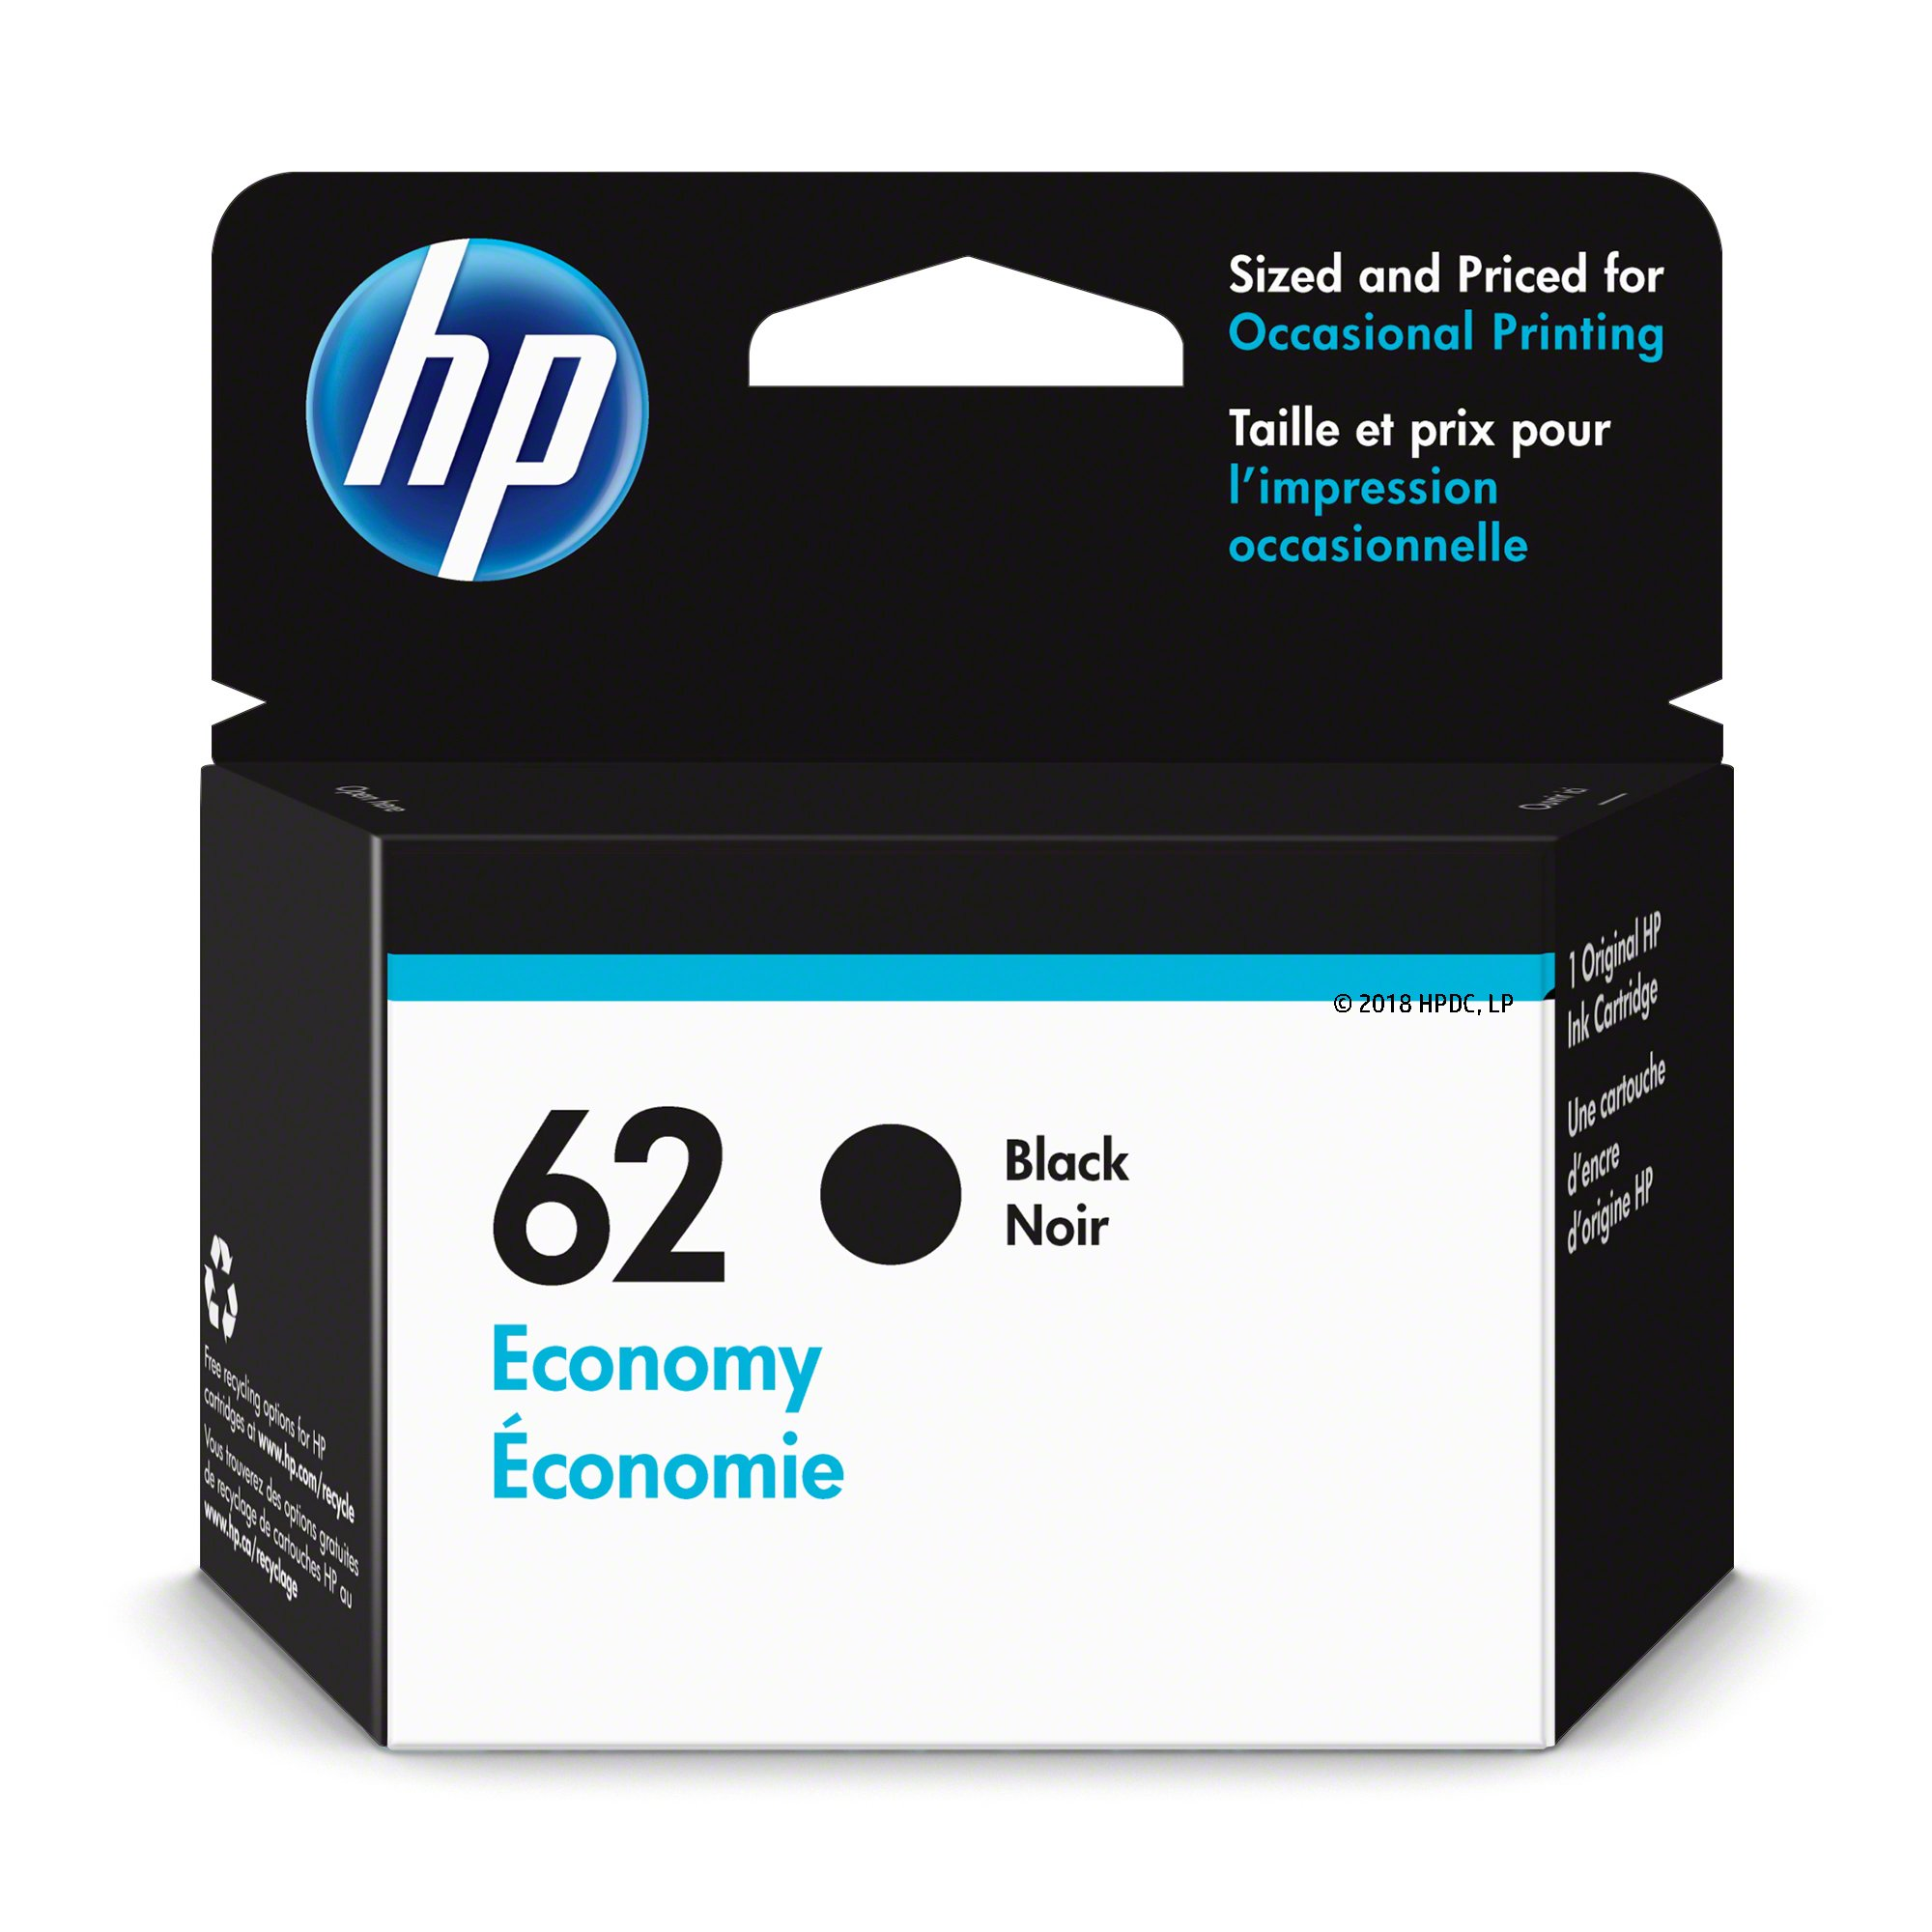 HP 62 Ink Cartridge Black Economy (1VV43AN) for HP Envy 5540 5541 5542 5543 5544 5545 5547 5548 5549 5640 5642 5643 5644 5660 5661 5663 5664 5665 7640 7643 7644 7645 HP Officejet 200 250 258 5740…